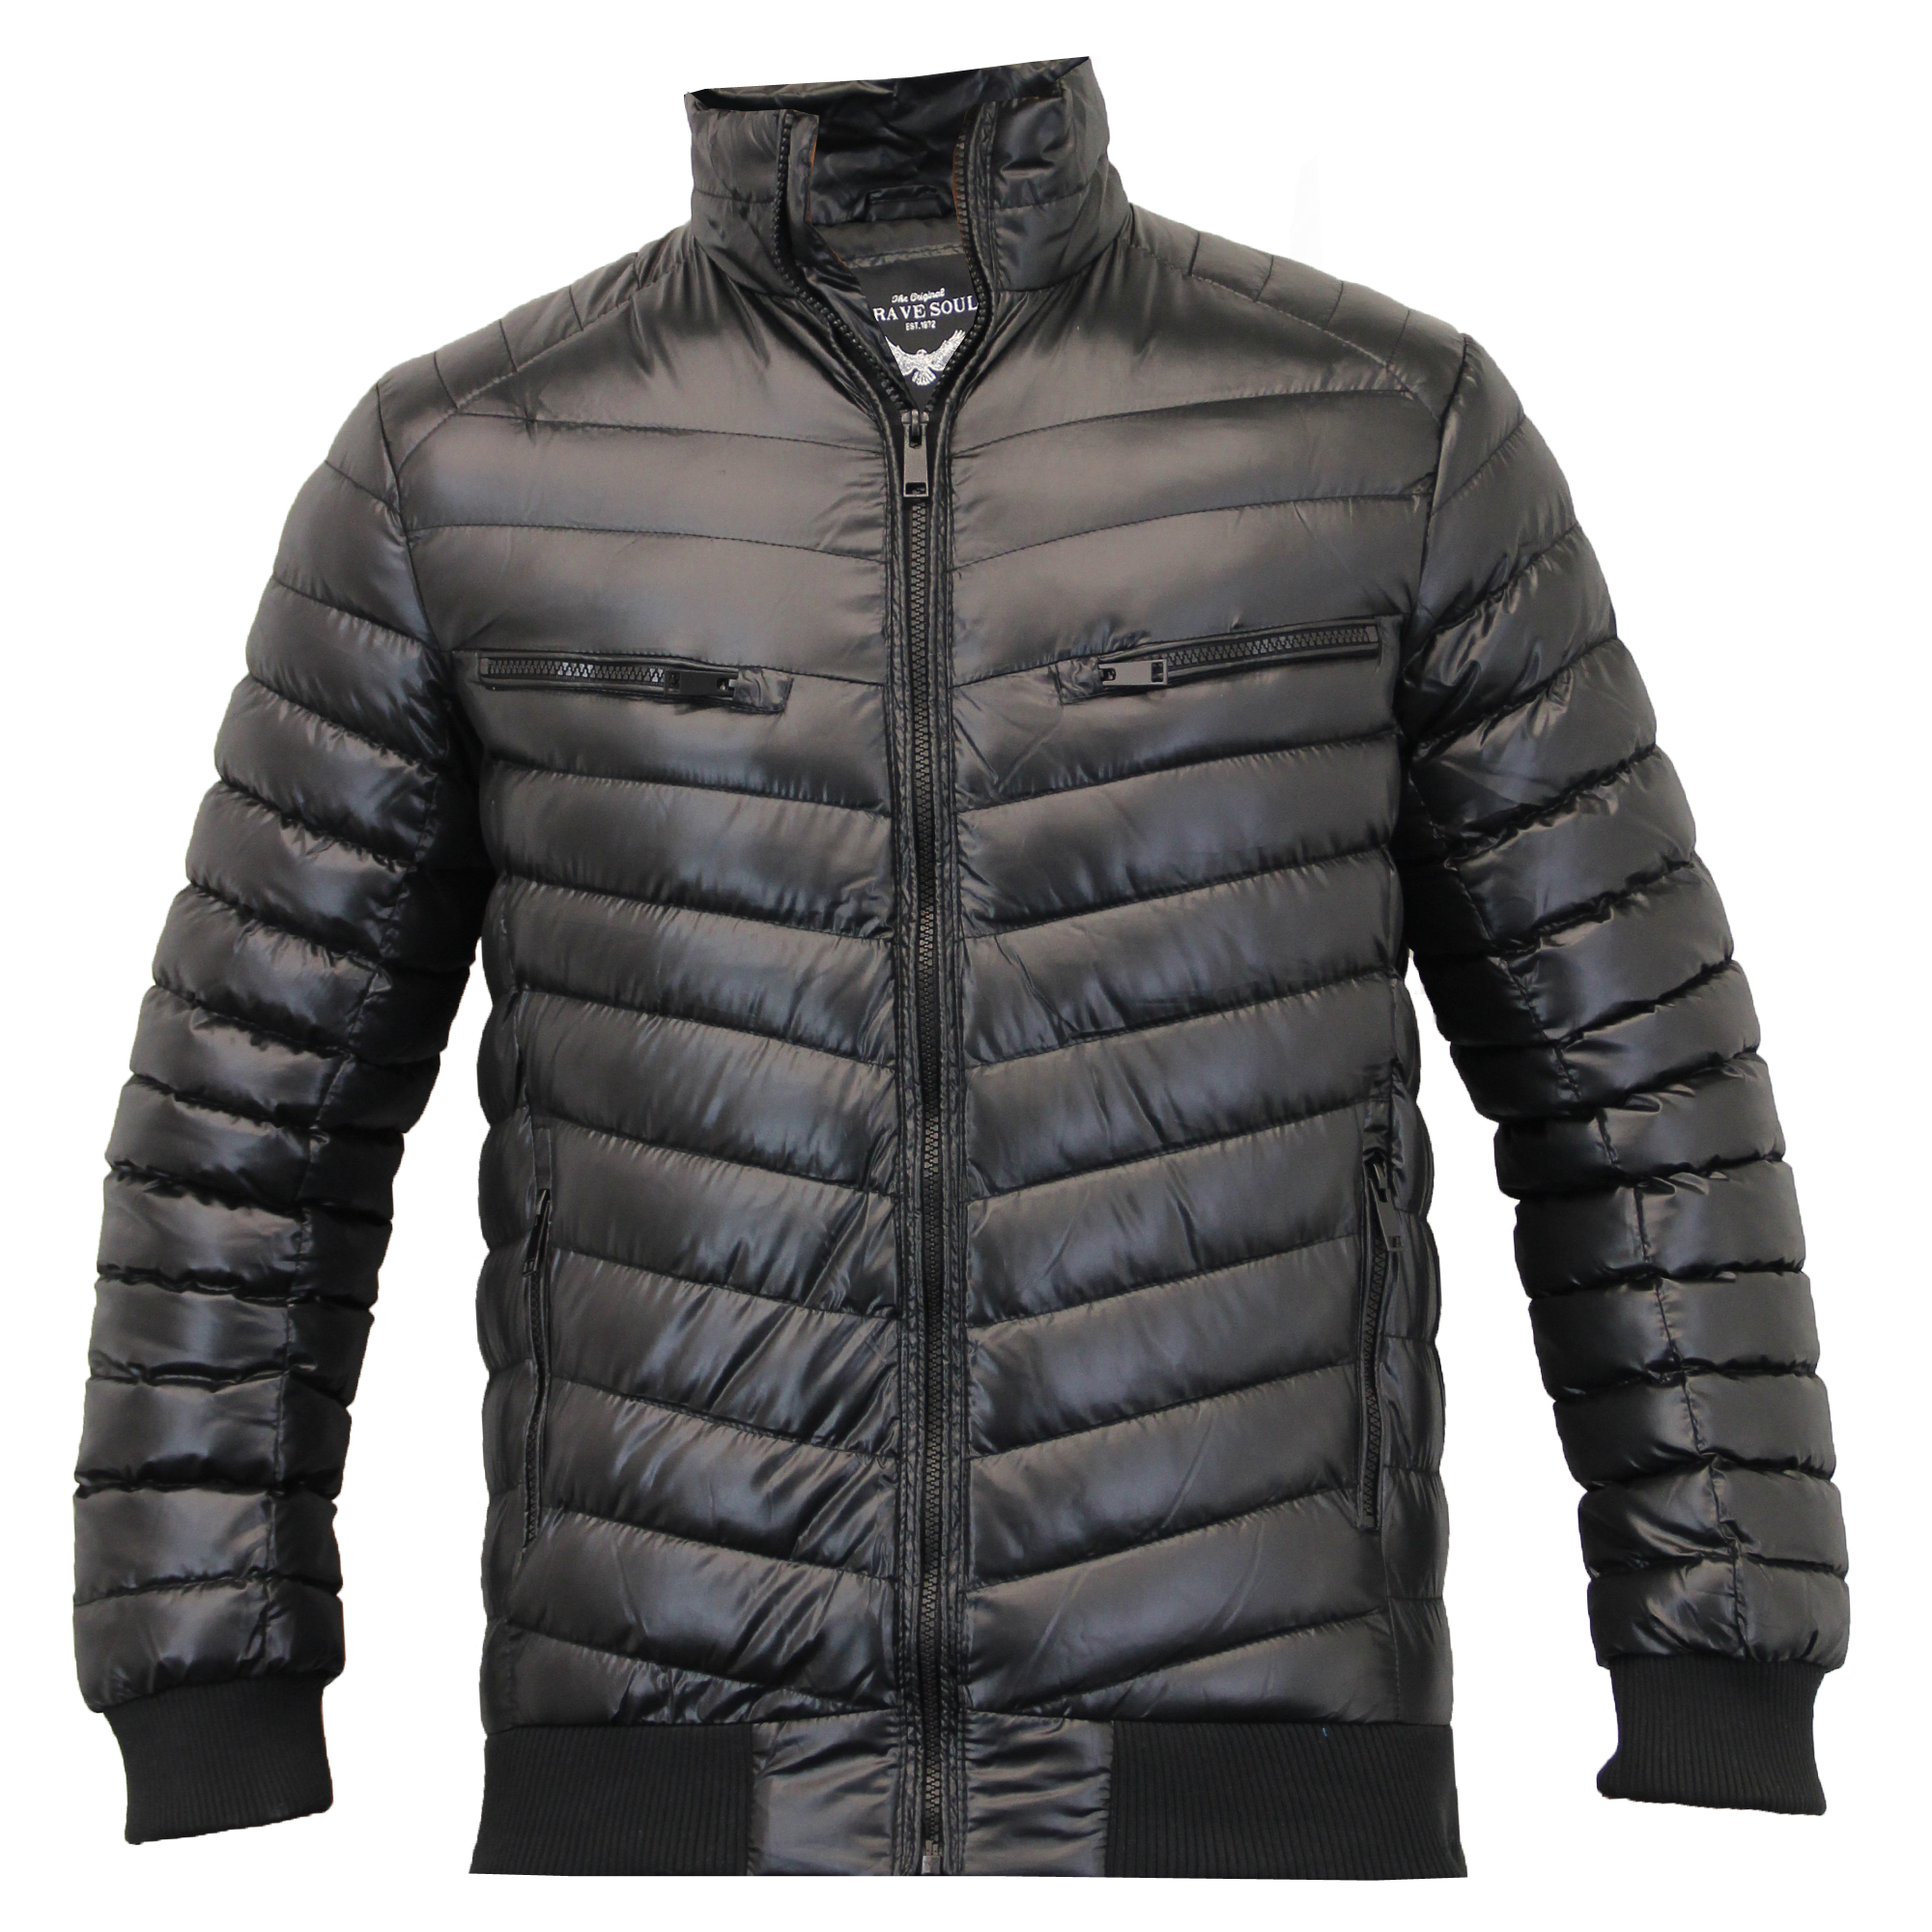 Popular mens shiny jacket of Good Quality and at Affordable Prices You can Buy on AliExpress. We believe in helping you find the product that is right for you.